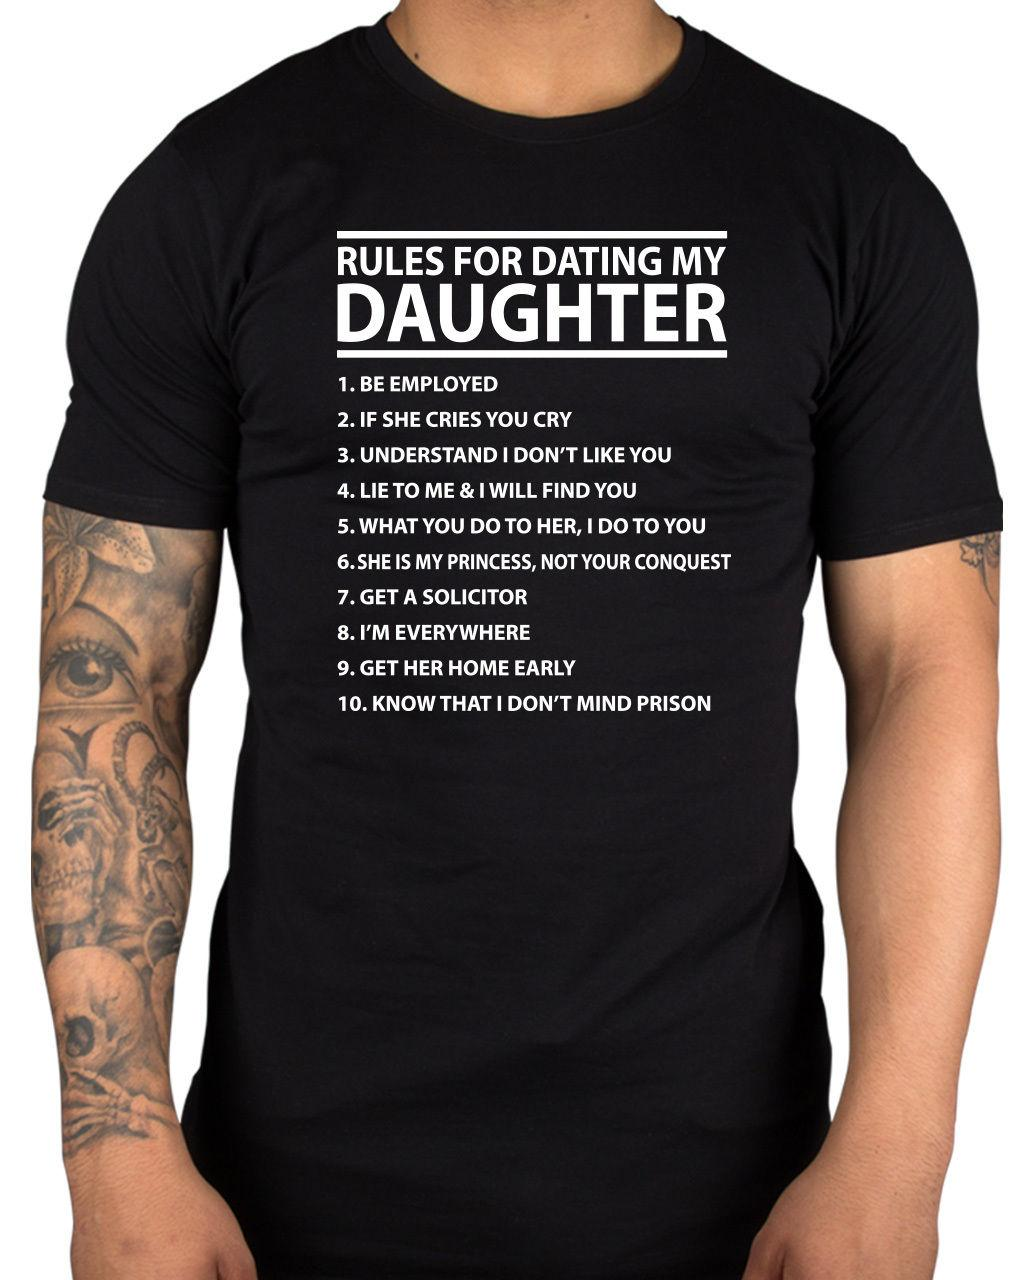 04a75f5a 10 Rules For Dating my Daughter T-shirts